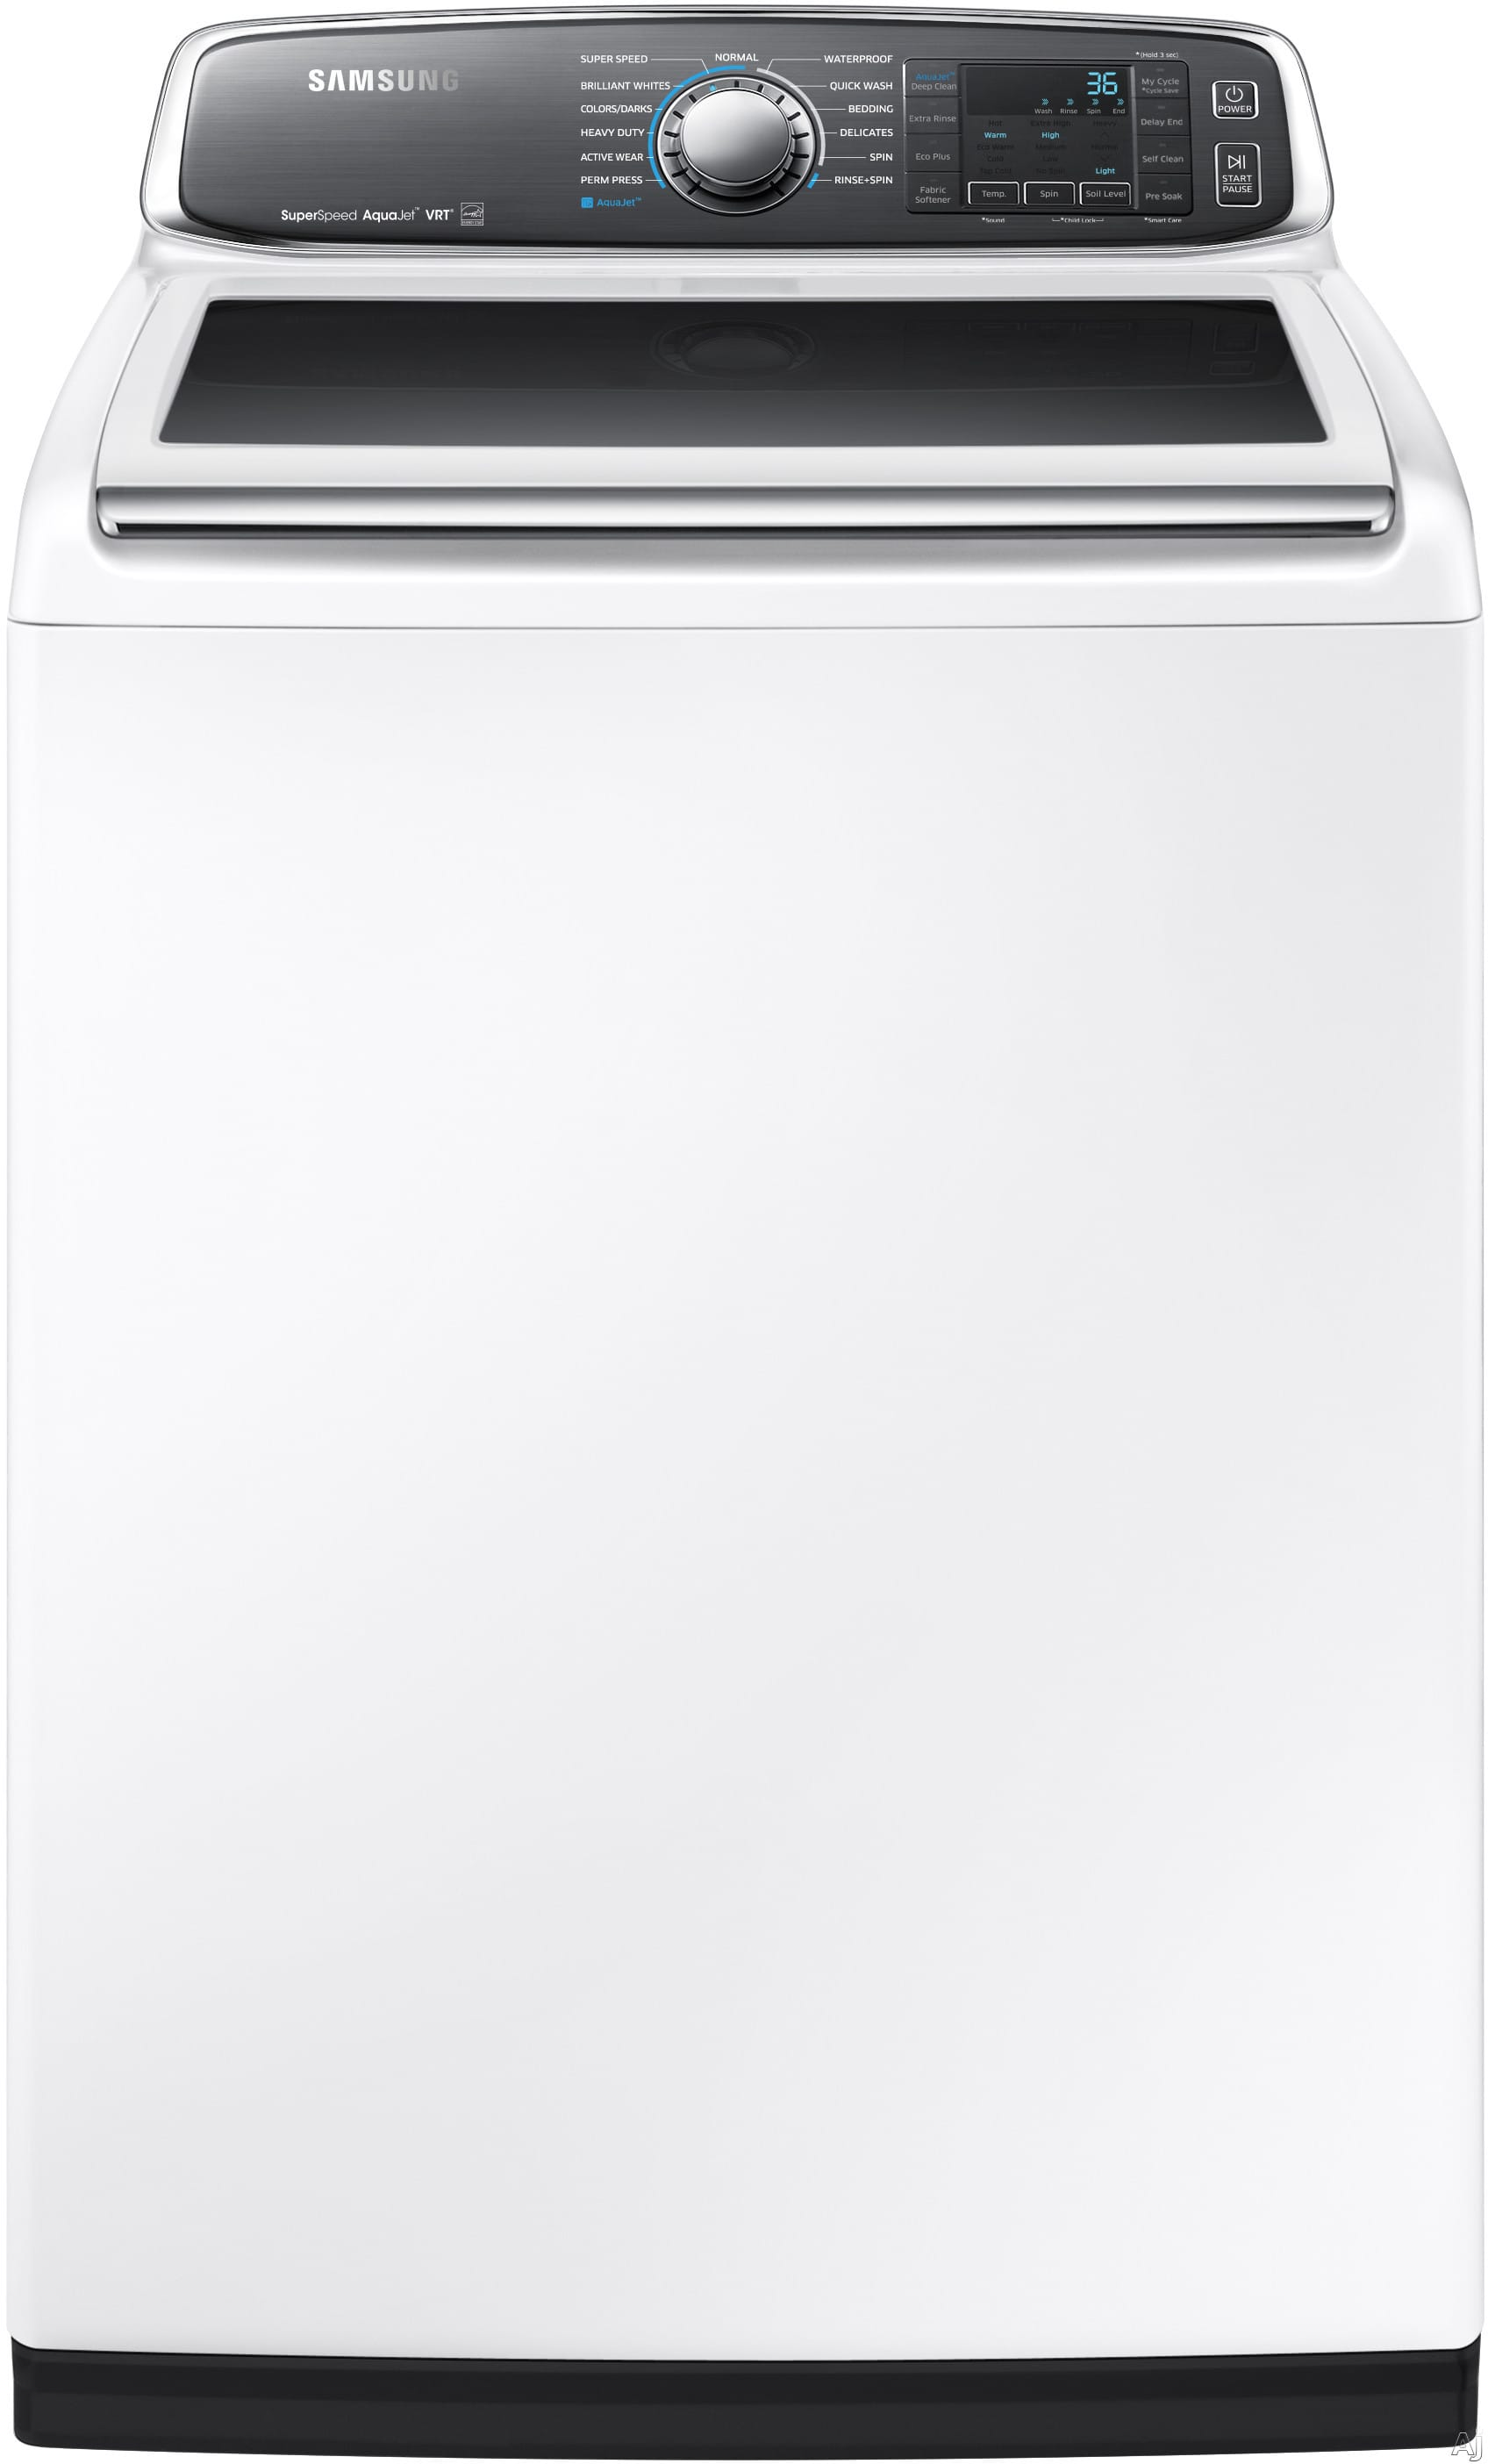 Countertop Microwave 13 Deep : cu. ft. Top Load Washer with 13 Wash Cycles, 1,100 RPM, AquaJet Deep ...